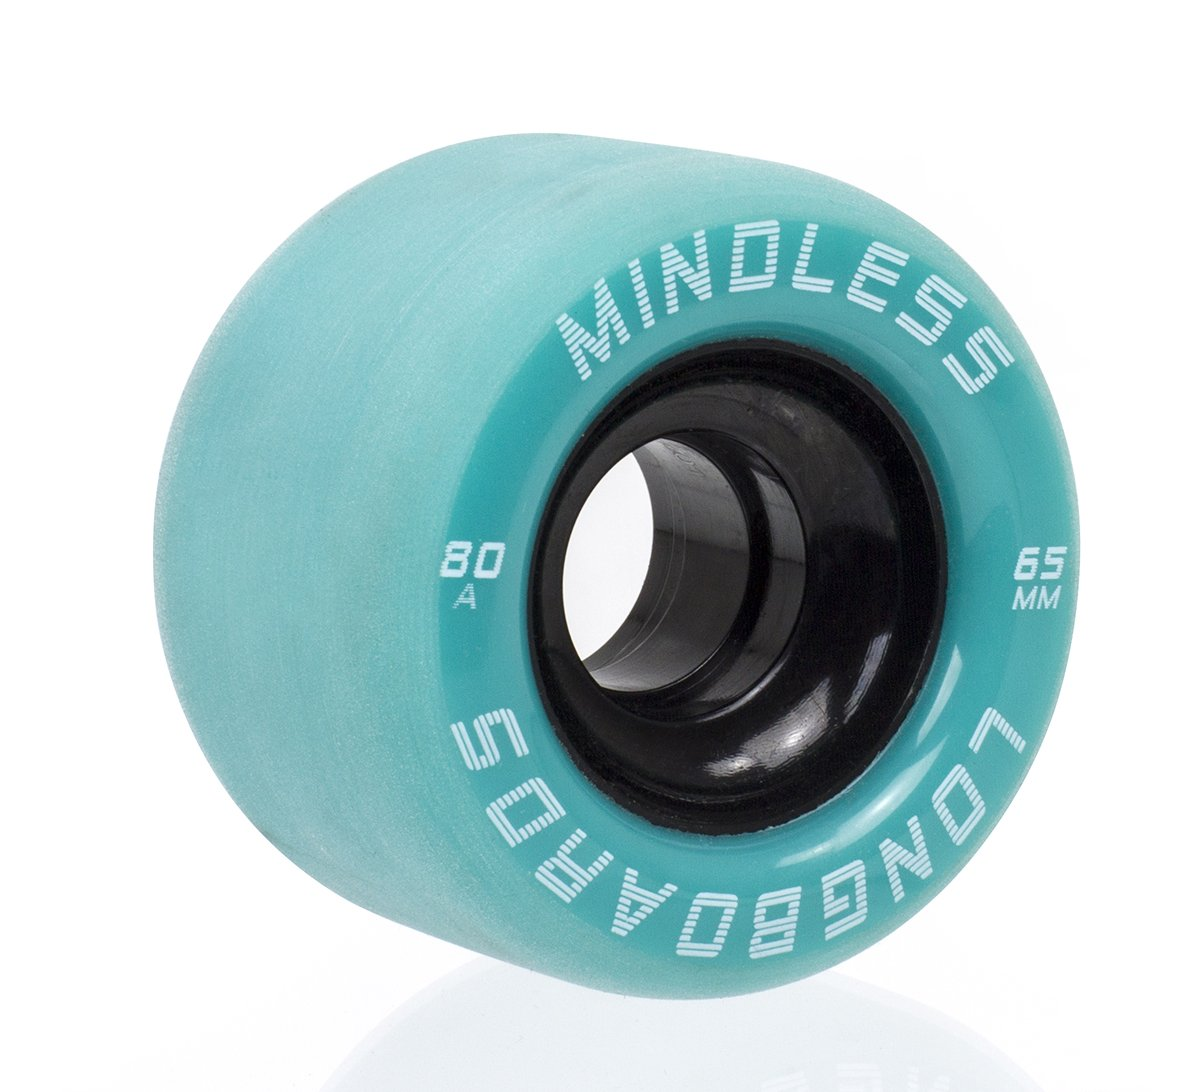 Mindless - Viper Wheels Teal 65 x 44 mm 80a (sada 4 ks)